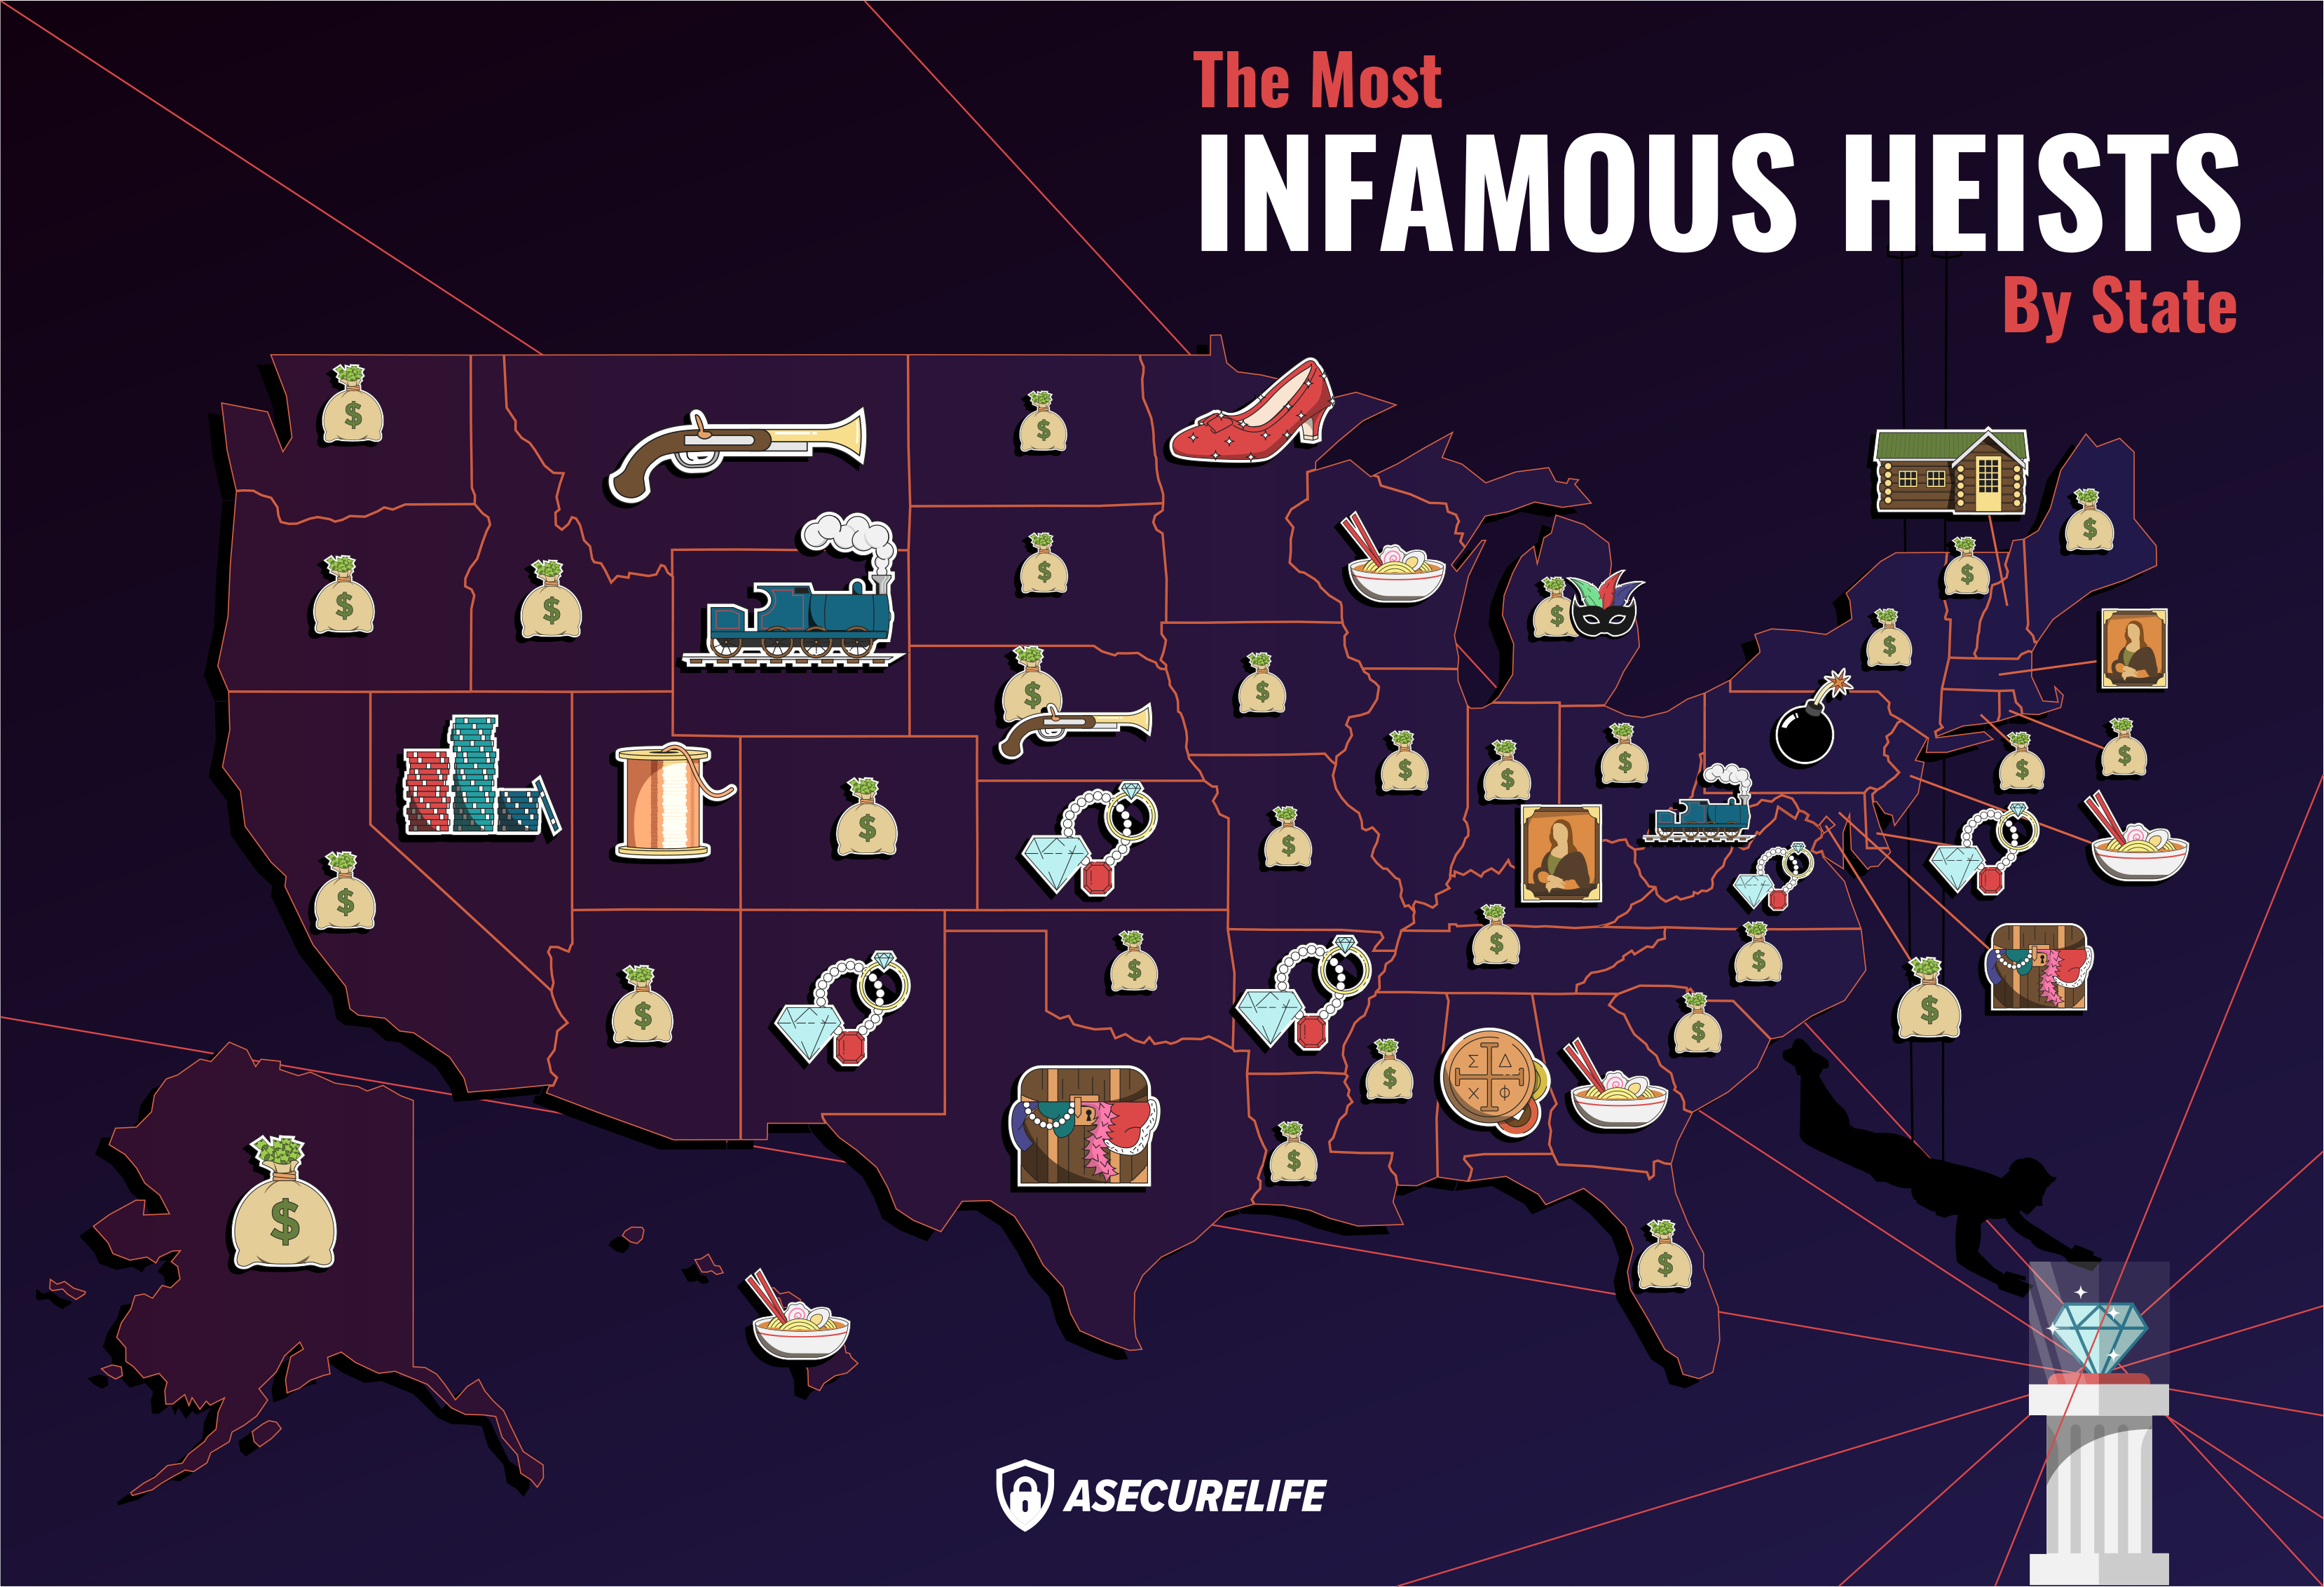 The Most Infamous Heists by State